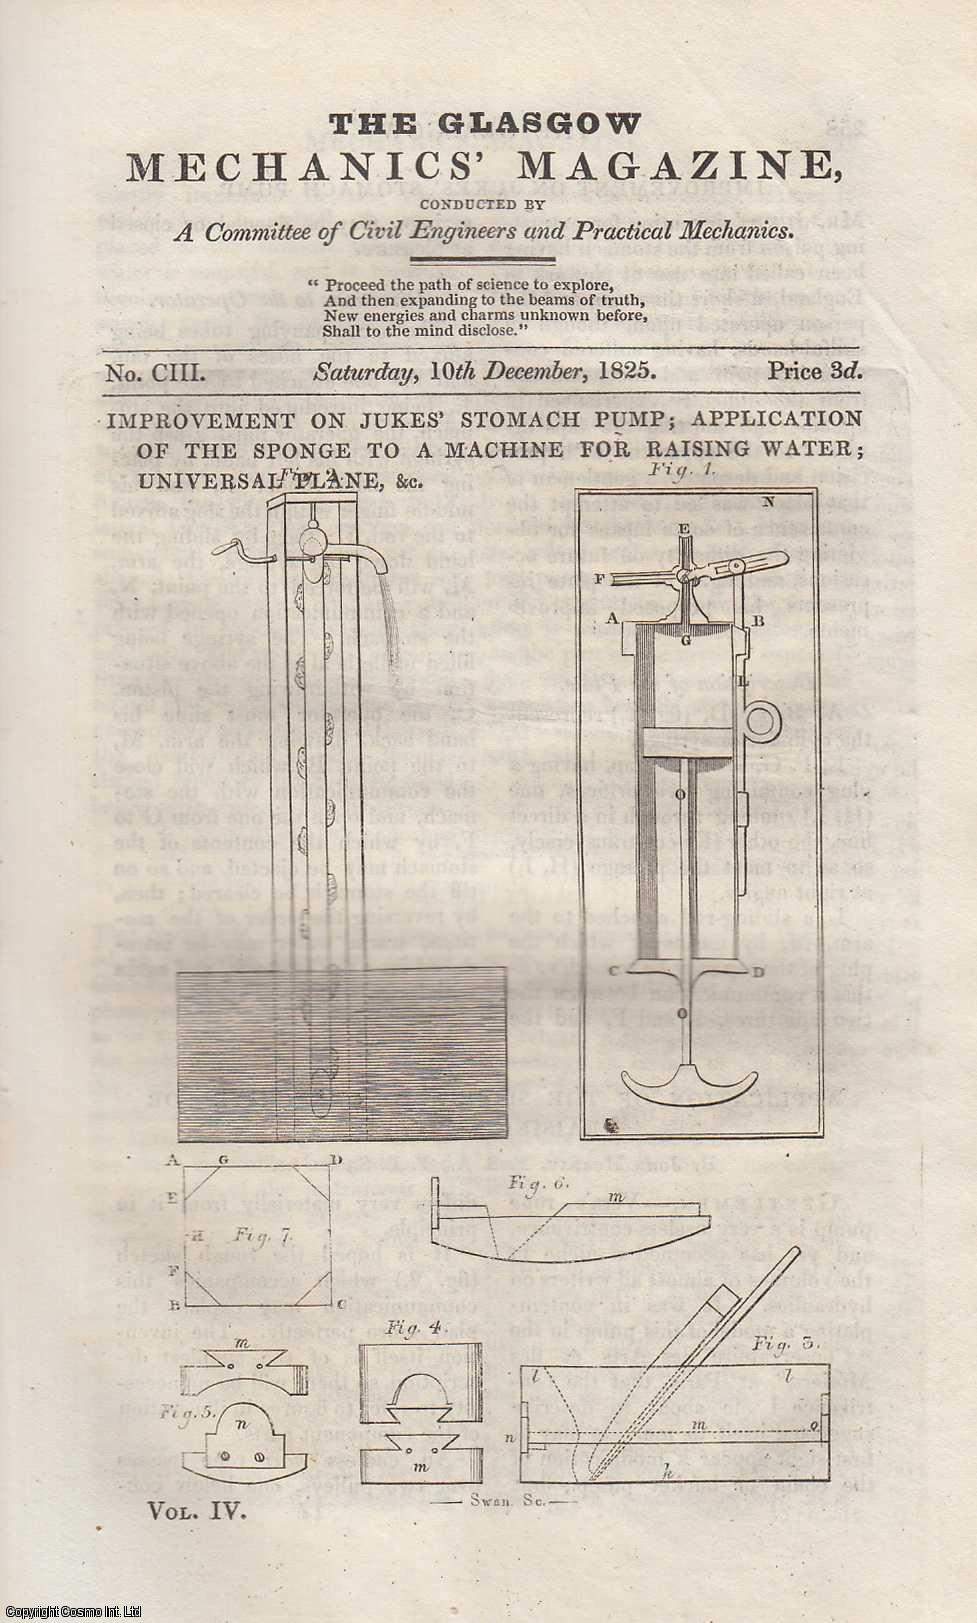 --- - Improvement on Jukes Stomach Pump, Application of The Sponge to a Machine For Raising Water, Universal Plane; The Diseases Incident to Mechanics; The Painter's and Varnisher's Pocket Manual, etc. Featured in Glasgow Mechanics' Magazine. Issue No. 103. A complete rare weekly issue of the Glasgow Mechanics' Magazine, 1826.